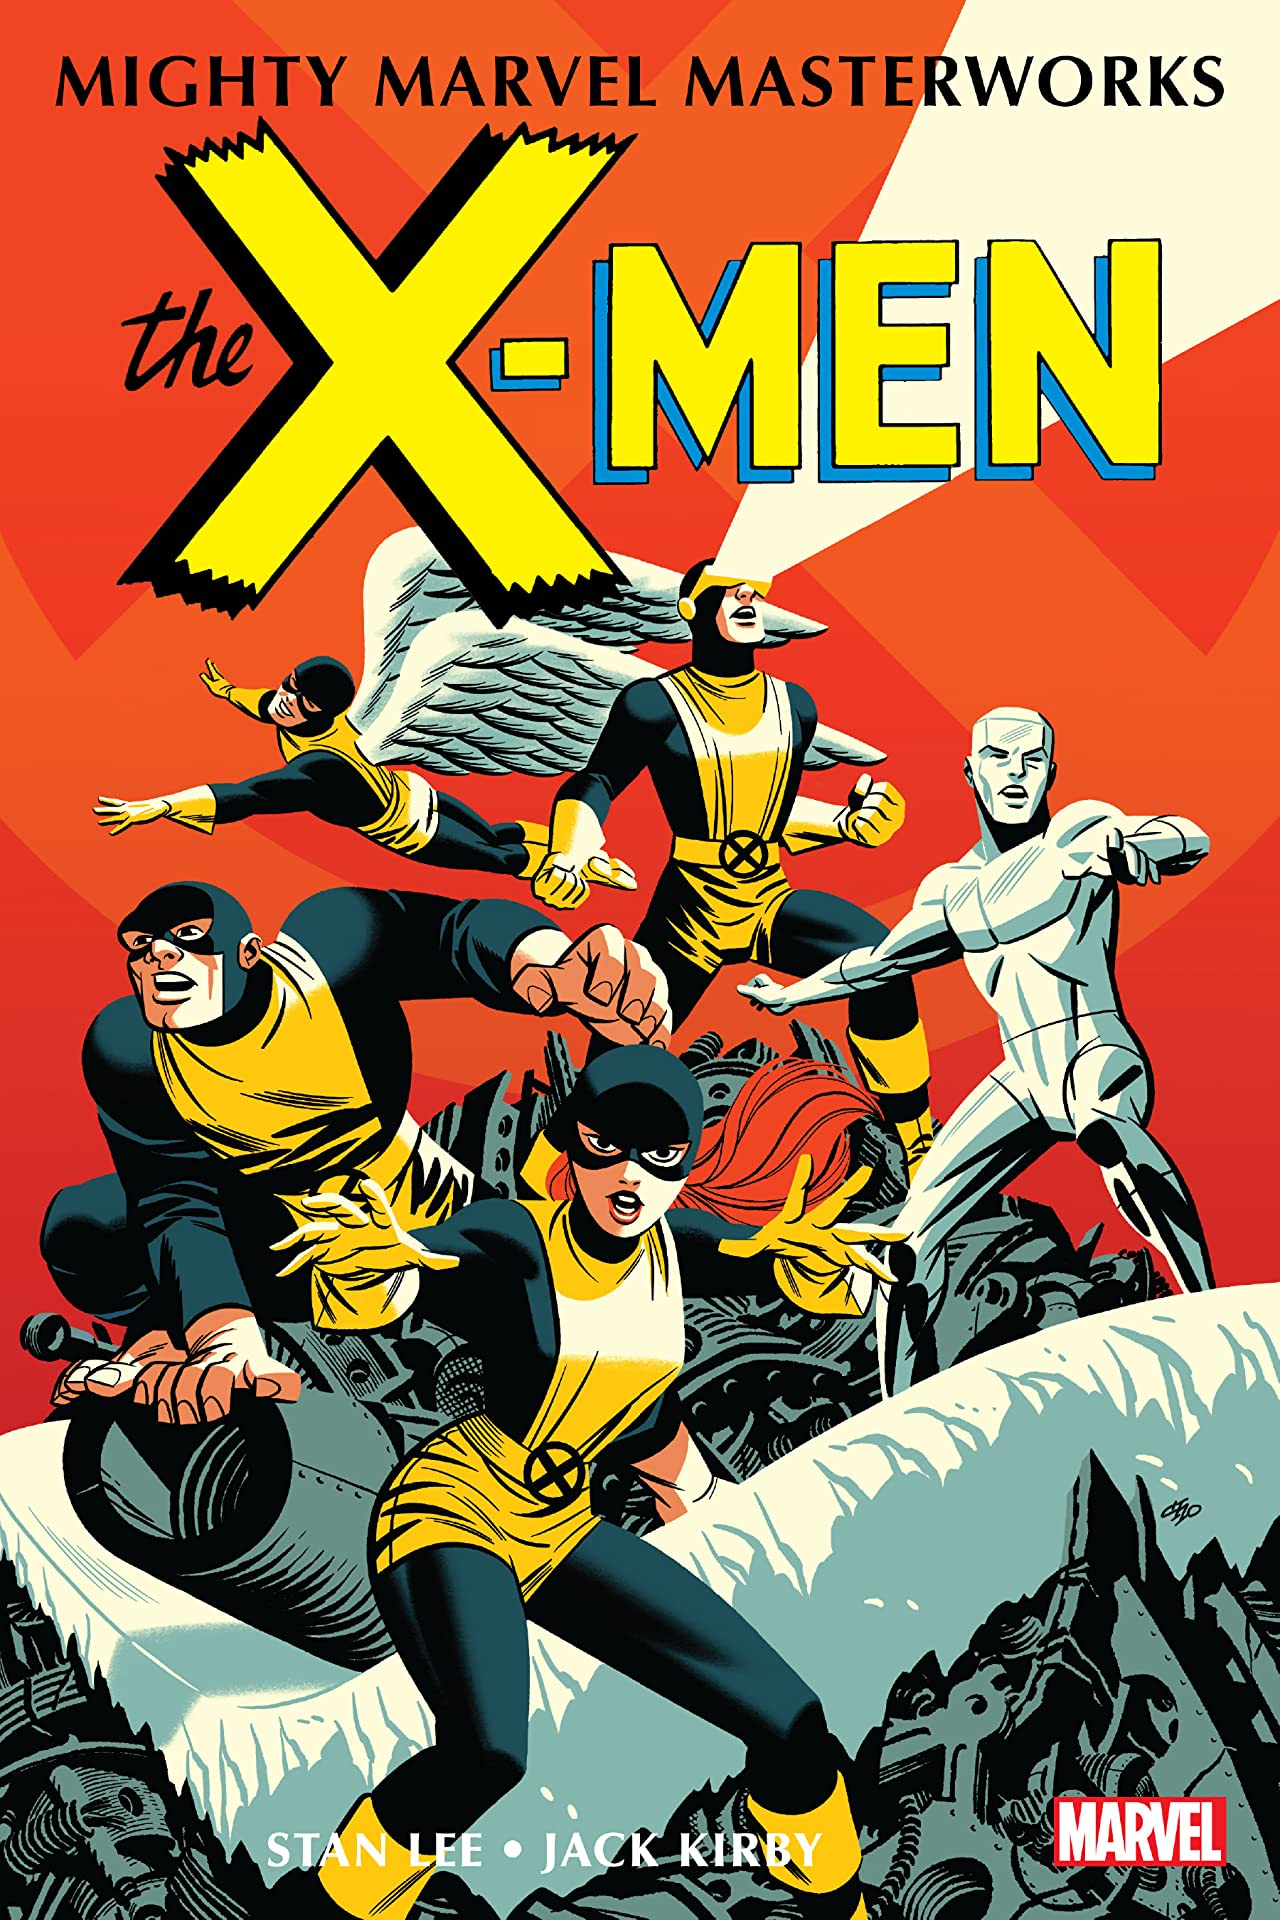 Mighty Marvel Masterworks: The X-Men Vol. 1: The Strangest Super Heroes Of All (Trade Paperback)